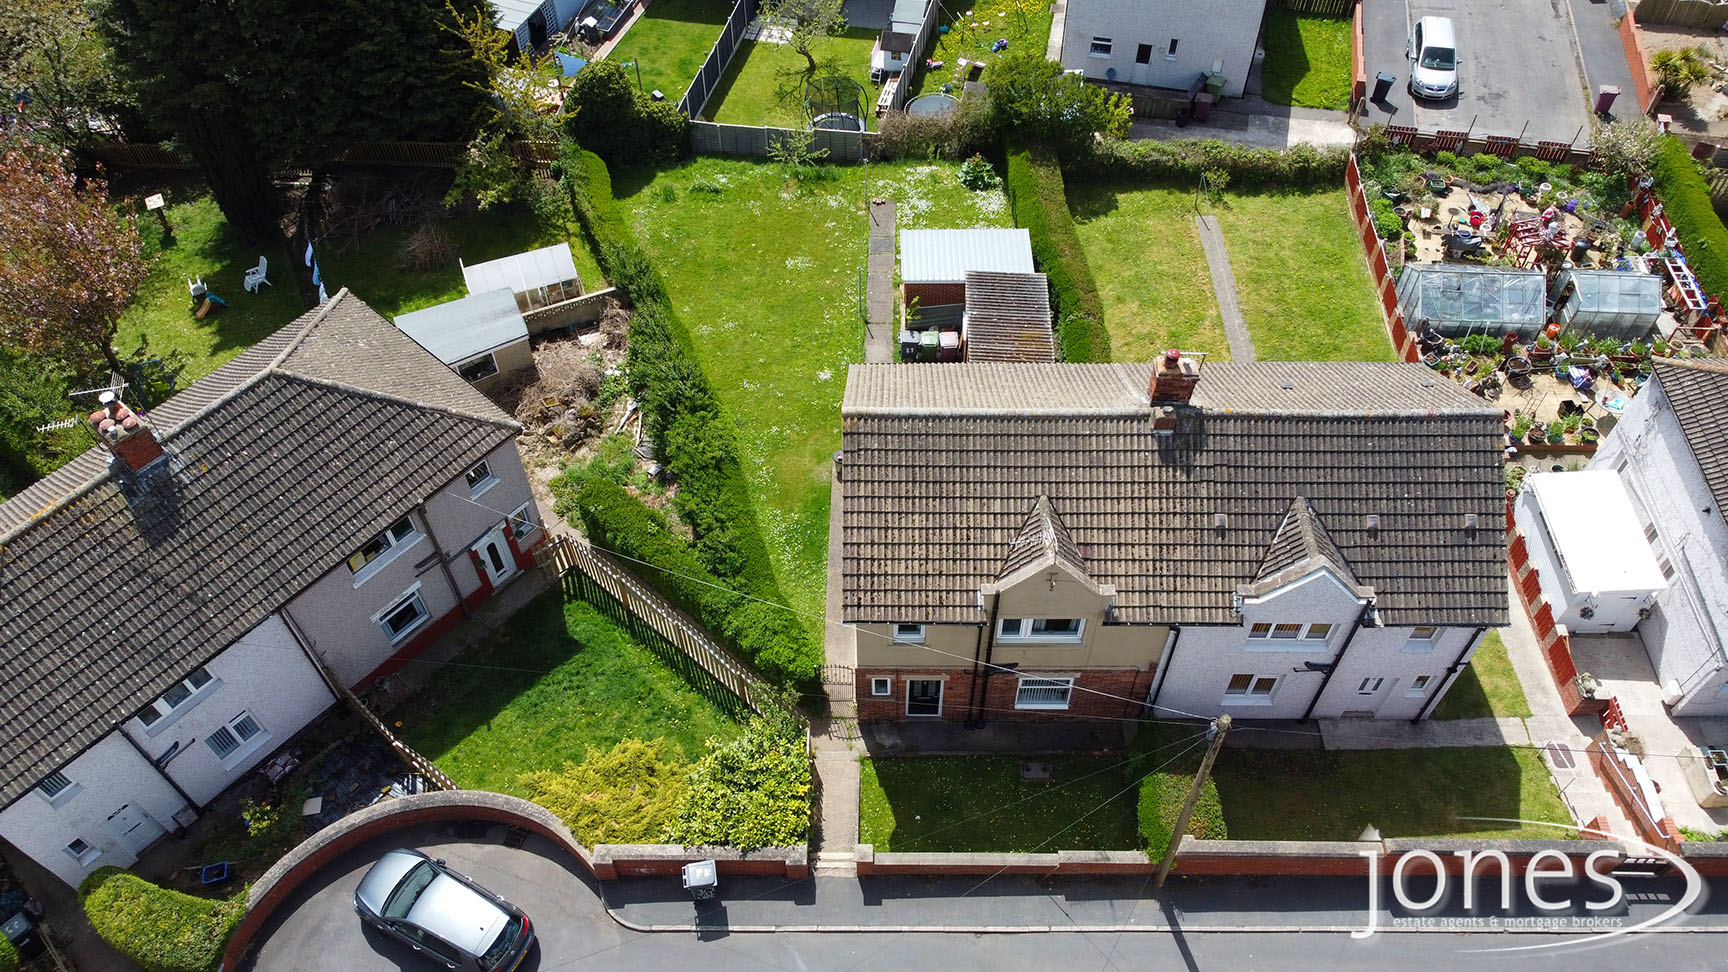 Home for Sale Let - Photo 13 Mill Crescent, Whitwell, Worksop, S80 4SF